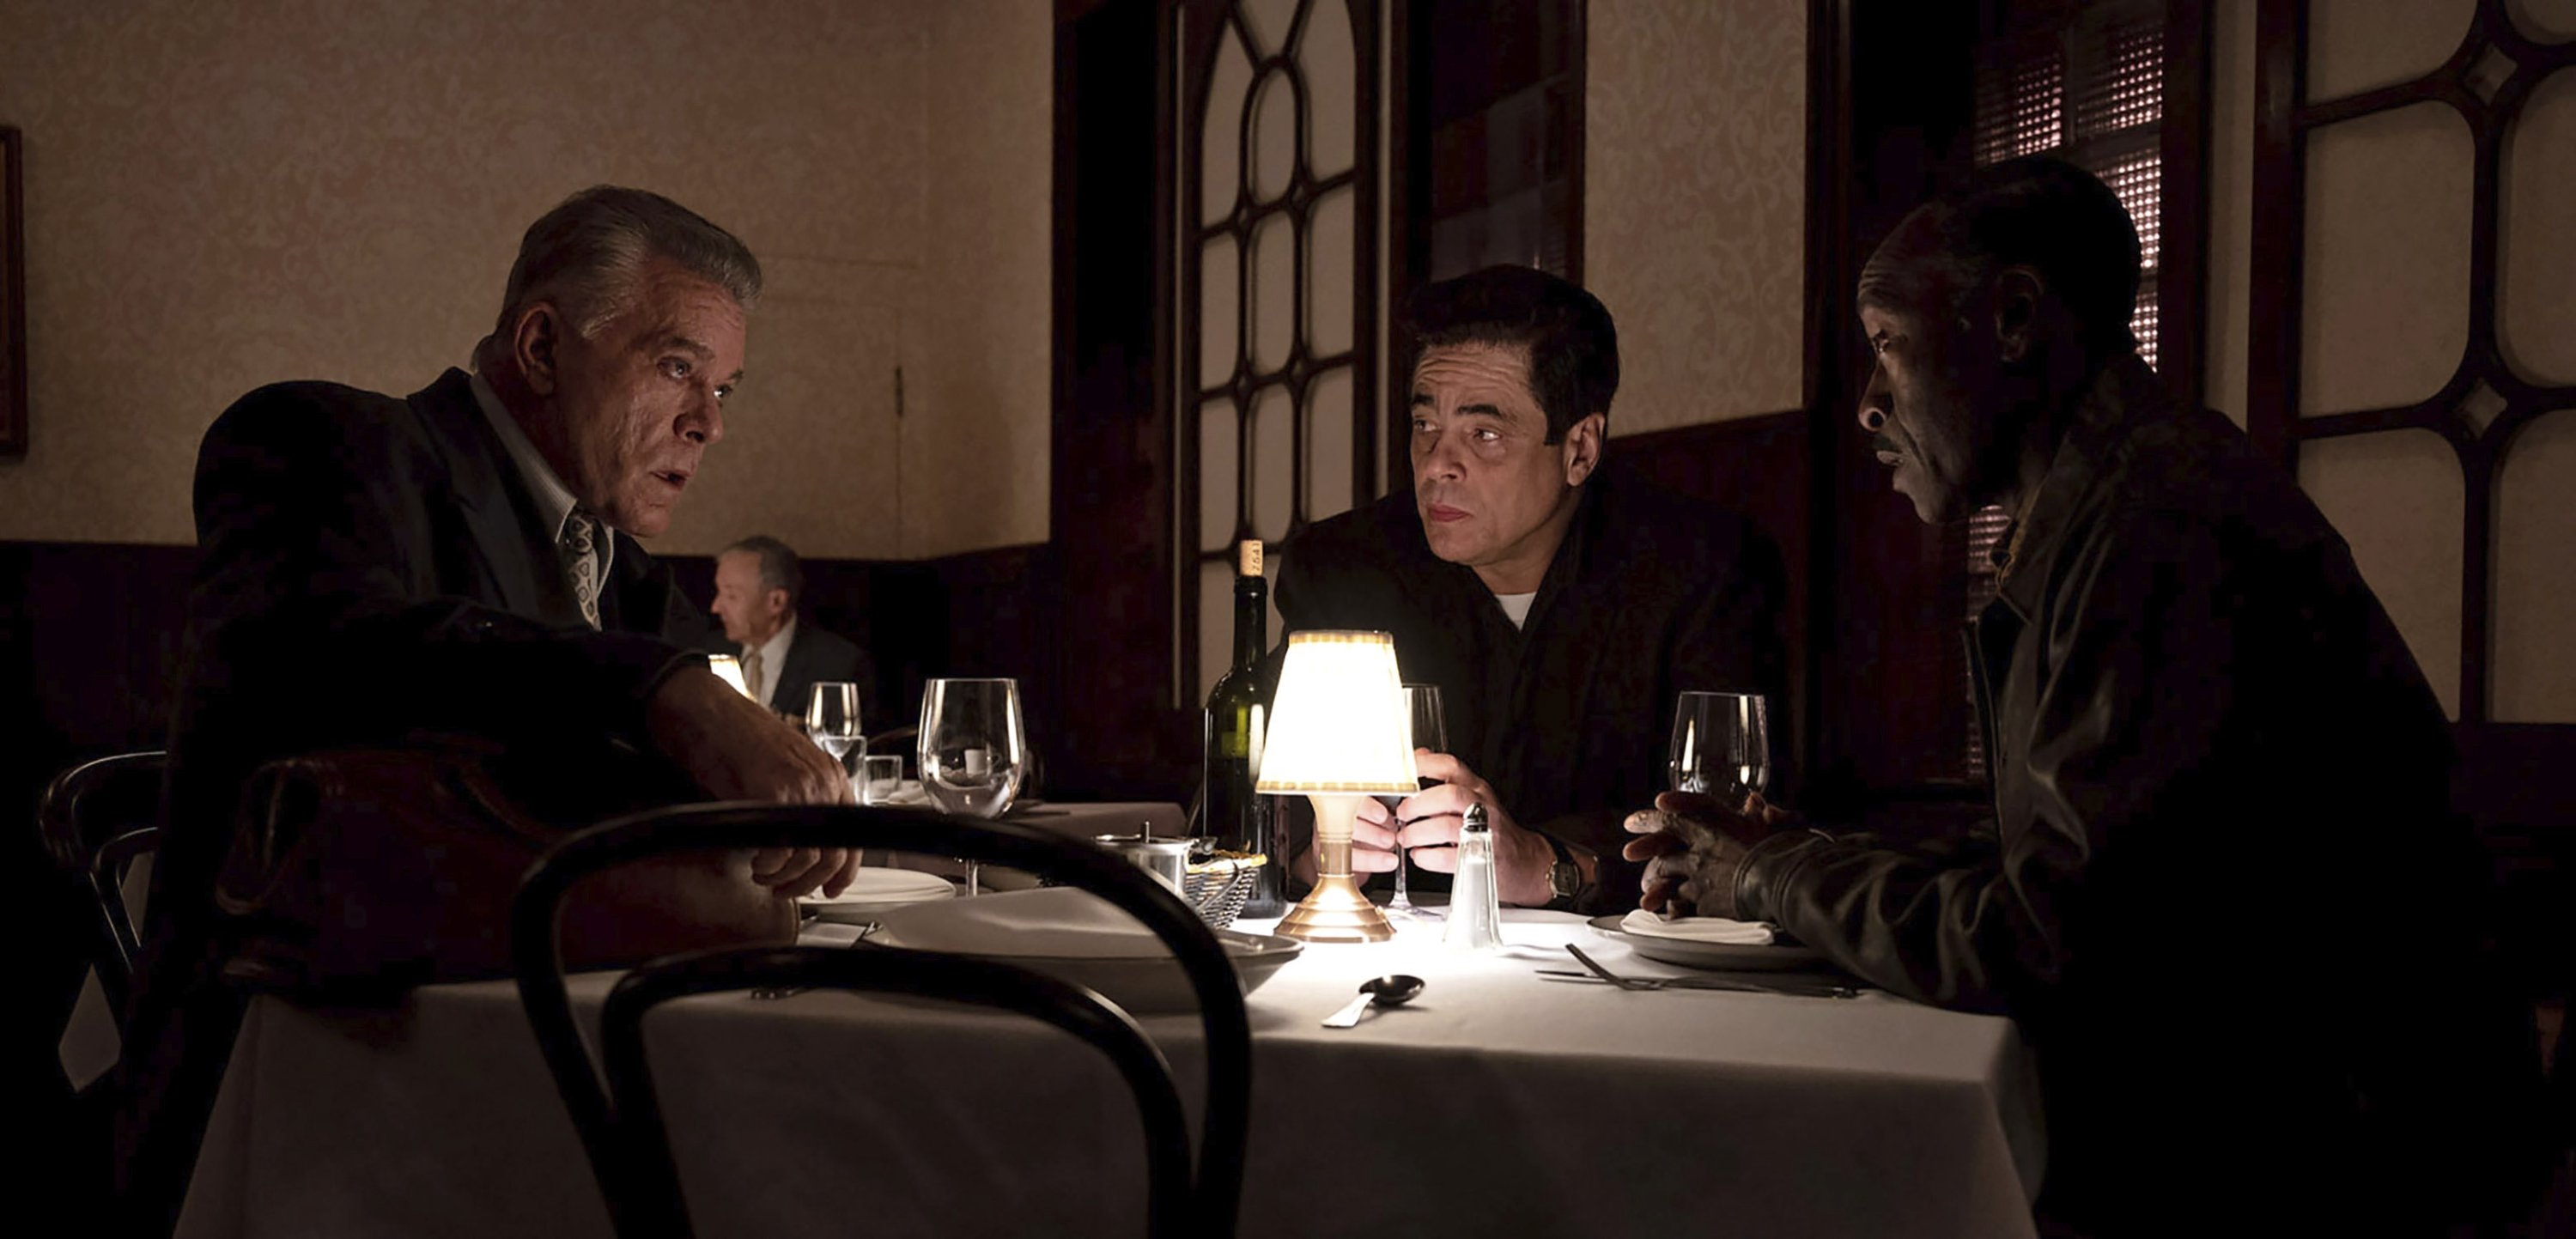 Ray Liotta (L), Benicio del Toro (C) andDon Cheadletalk while sitting at a restaurant table, in a scene from Steven Soderbergh's 'No Sudden Move,' a film that will premiere as the centerpiece of the Tribeca Film Festival next month. (Warner Bros. Pictures via AP)